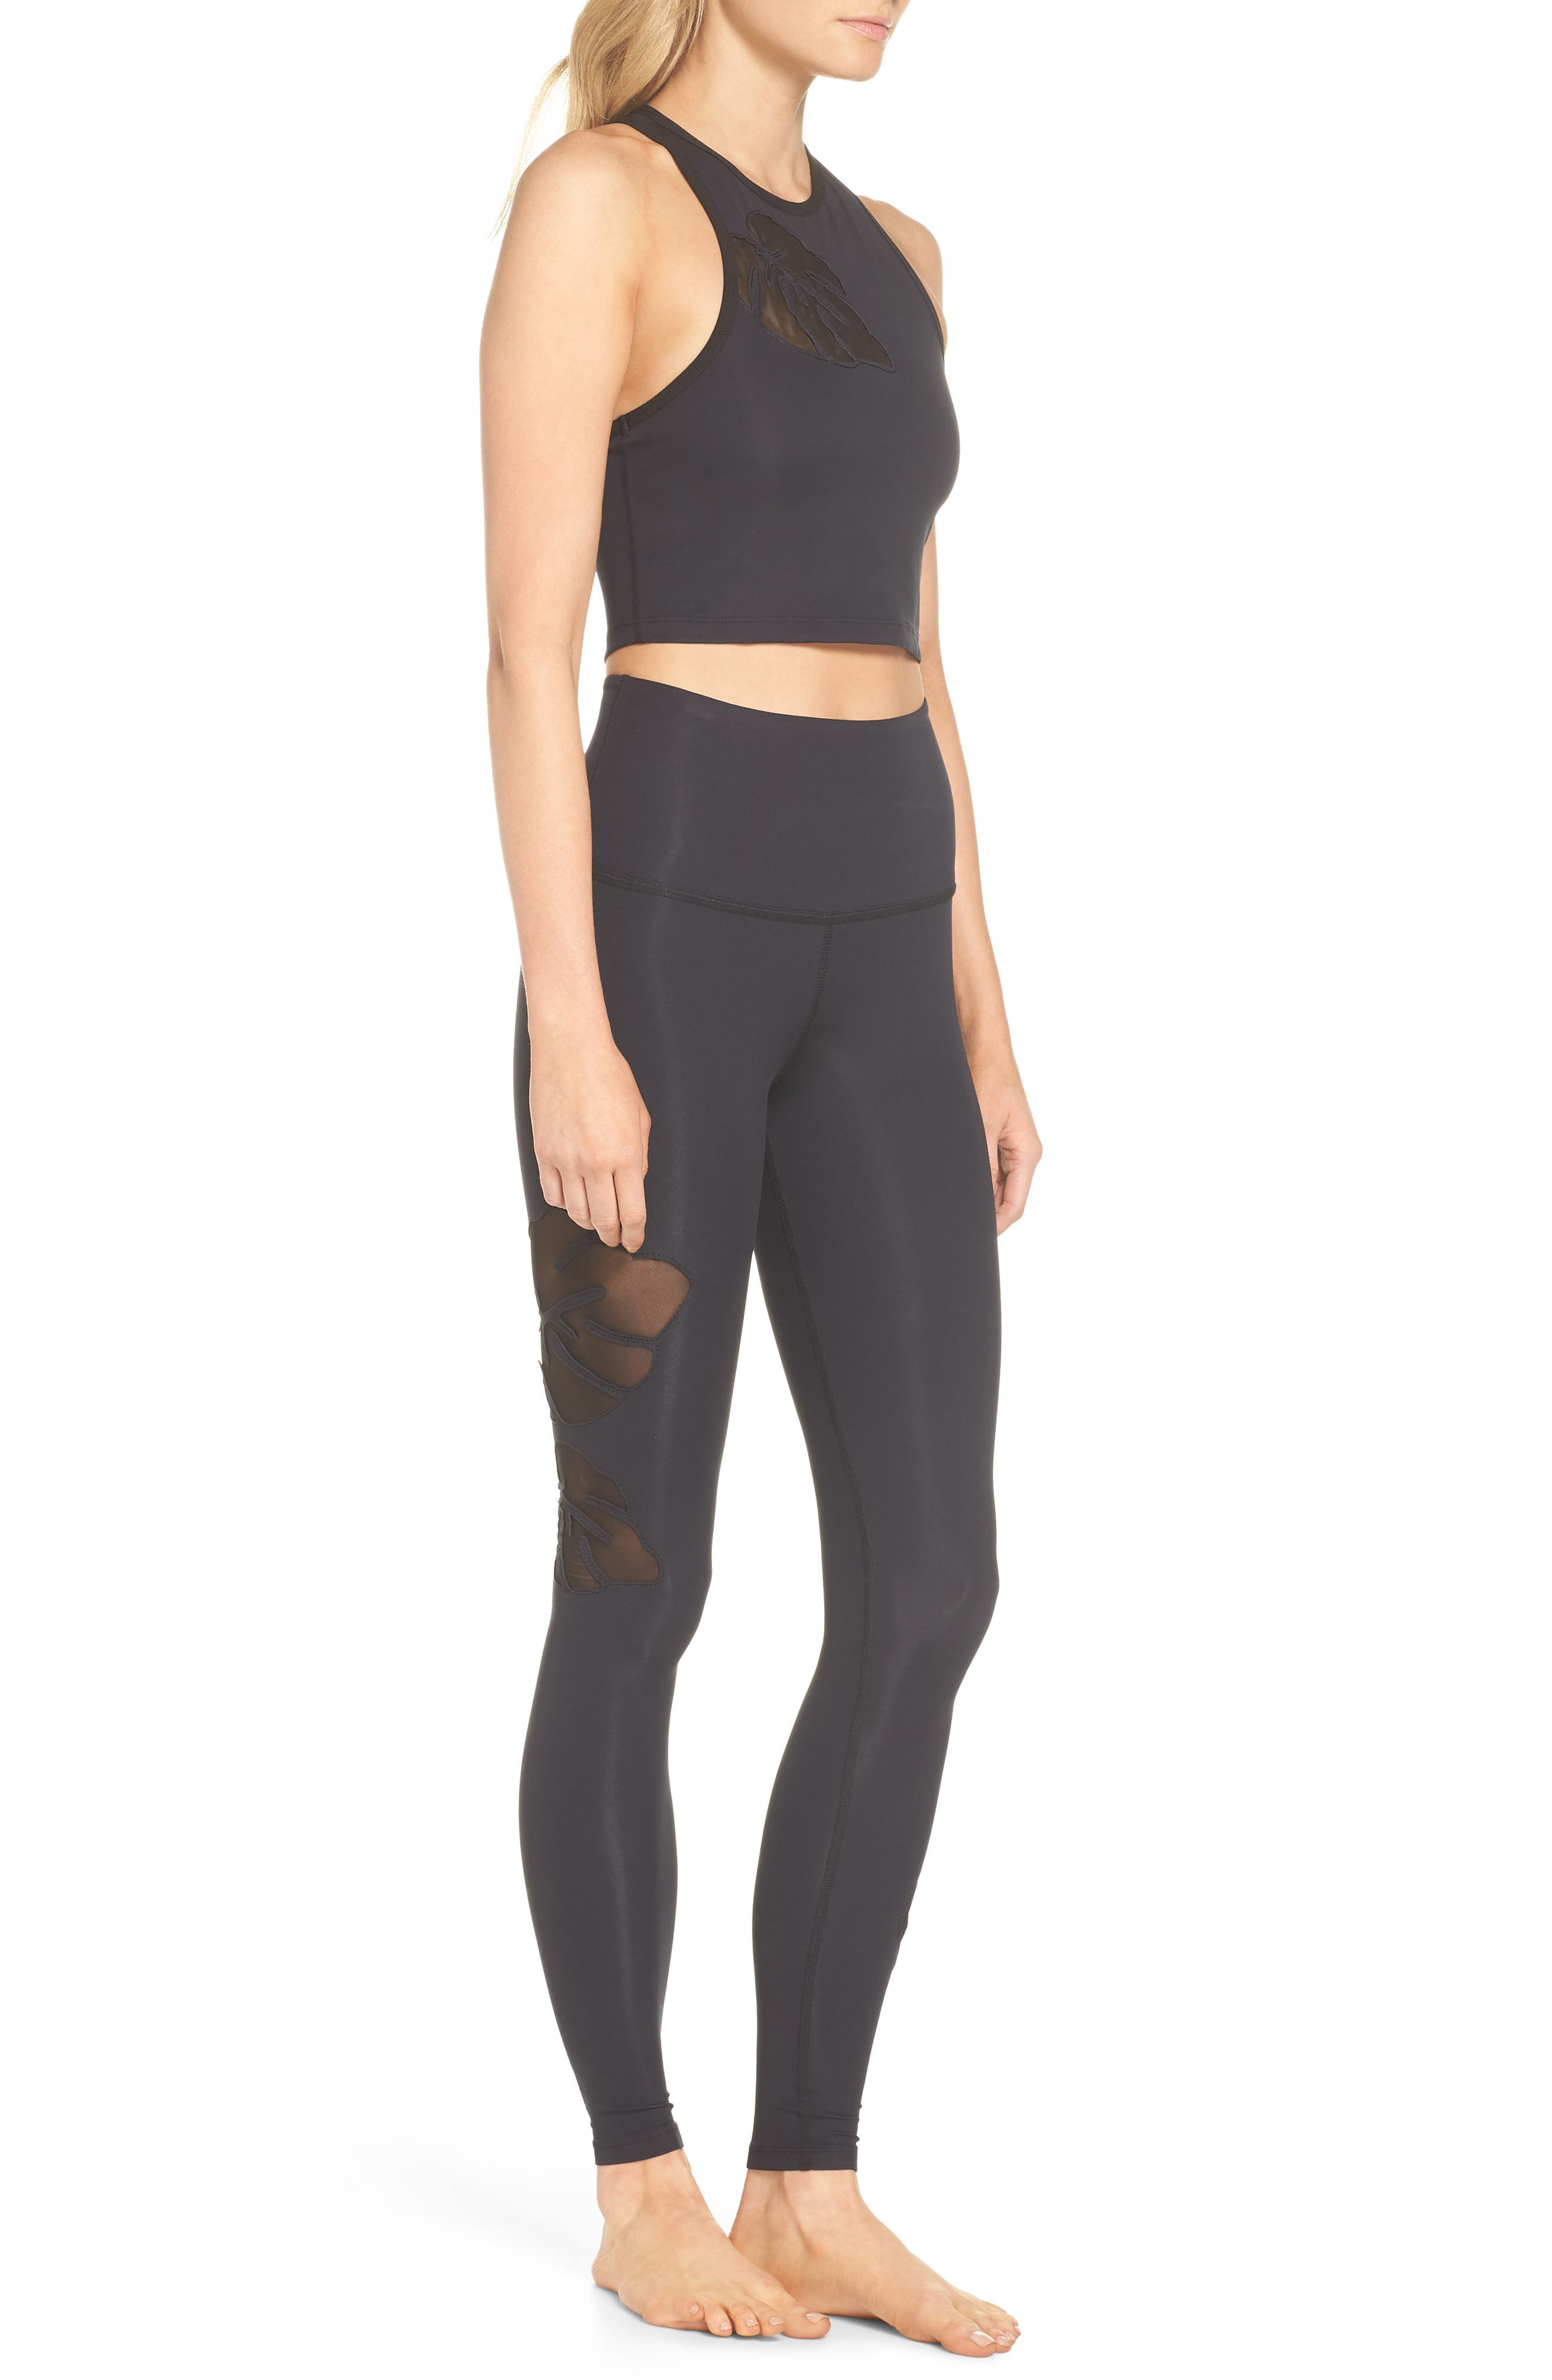 Take Leaf High Waist Leggings,                             Alternate thumbnail 8, color,                             Black